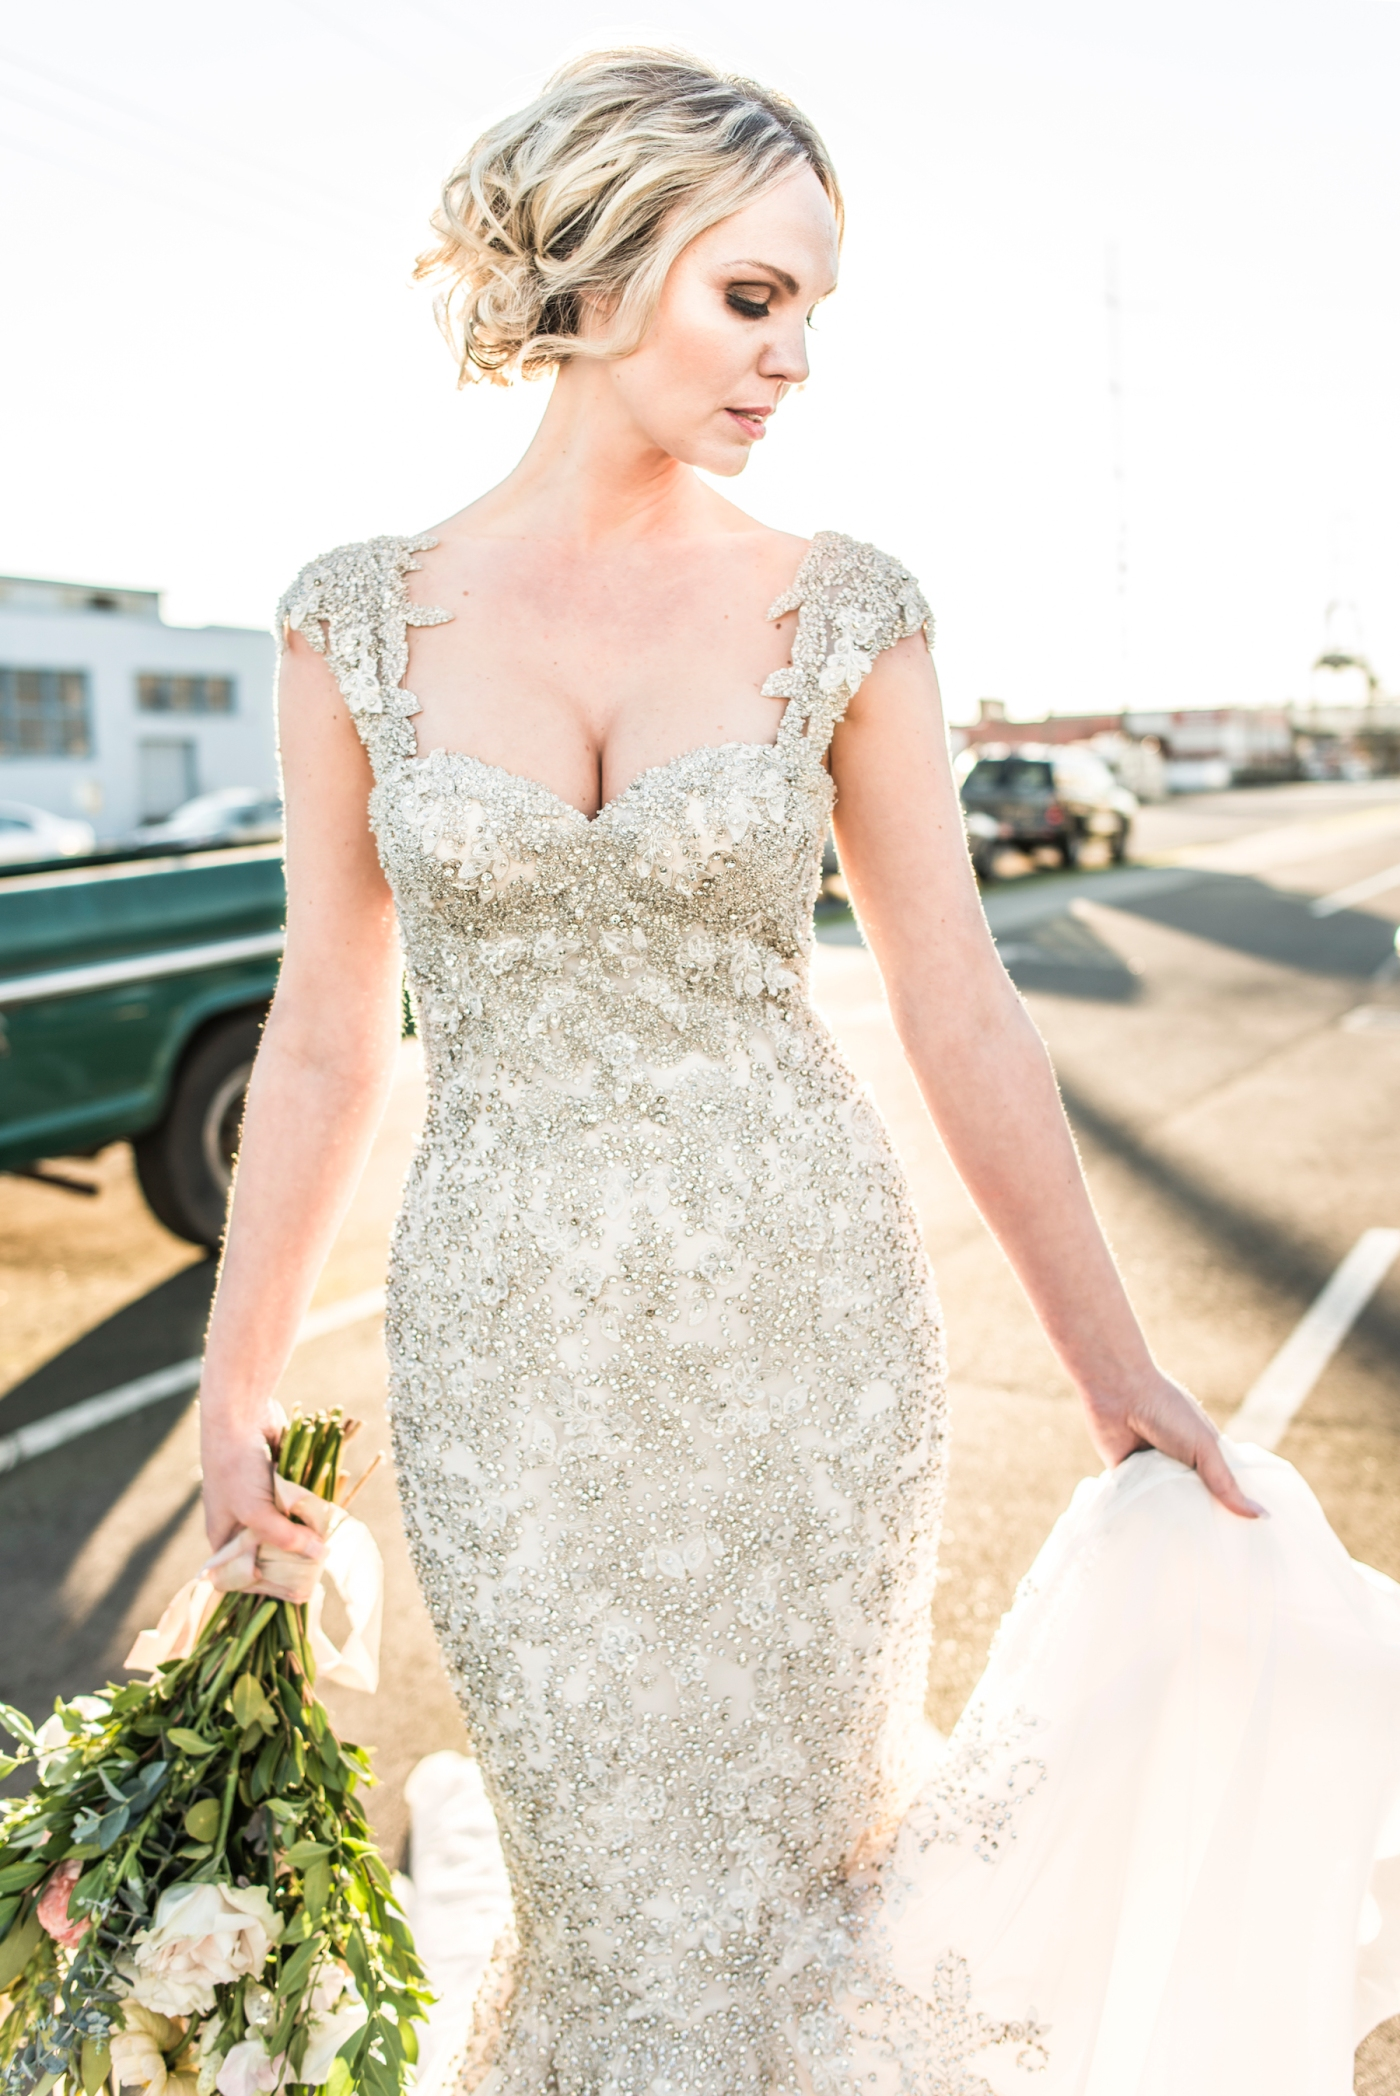 photography_by_jane_speleers_2017_wedding_show_i_do_sodo_within_designed_by_melody_davisdsc_0777